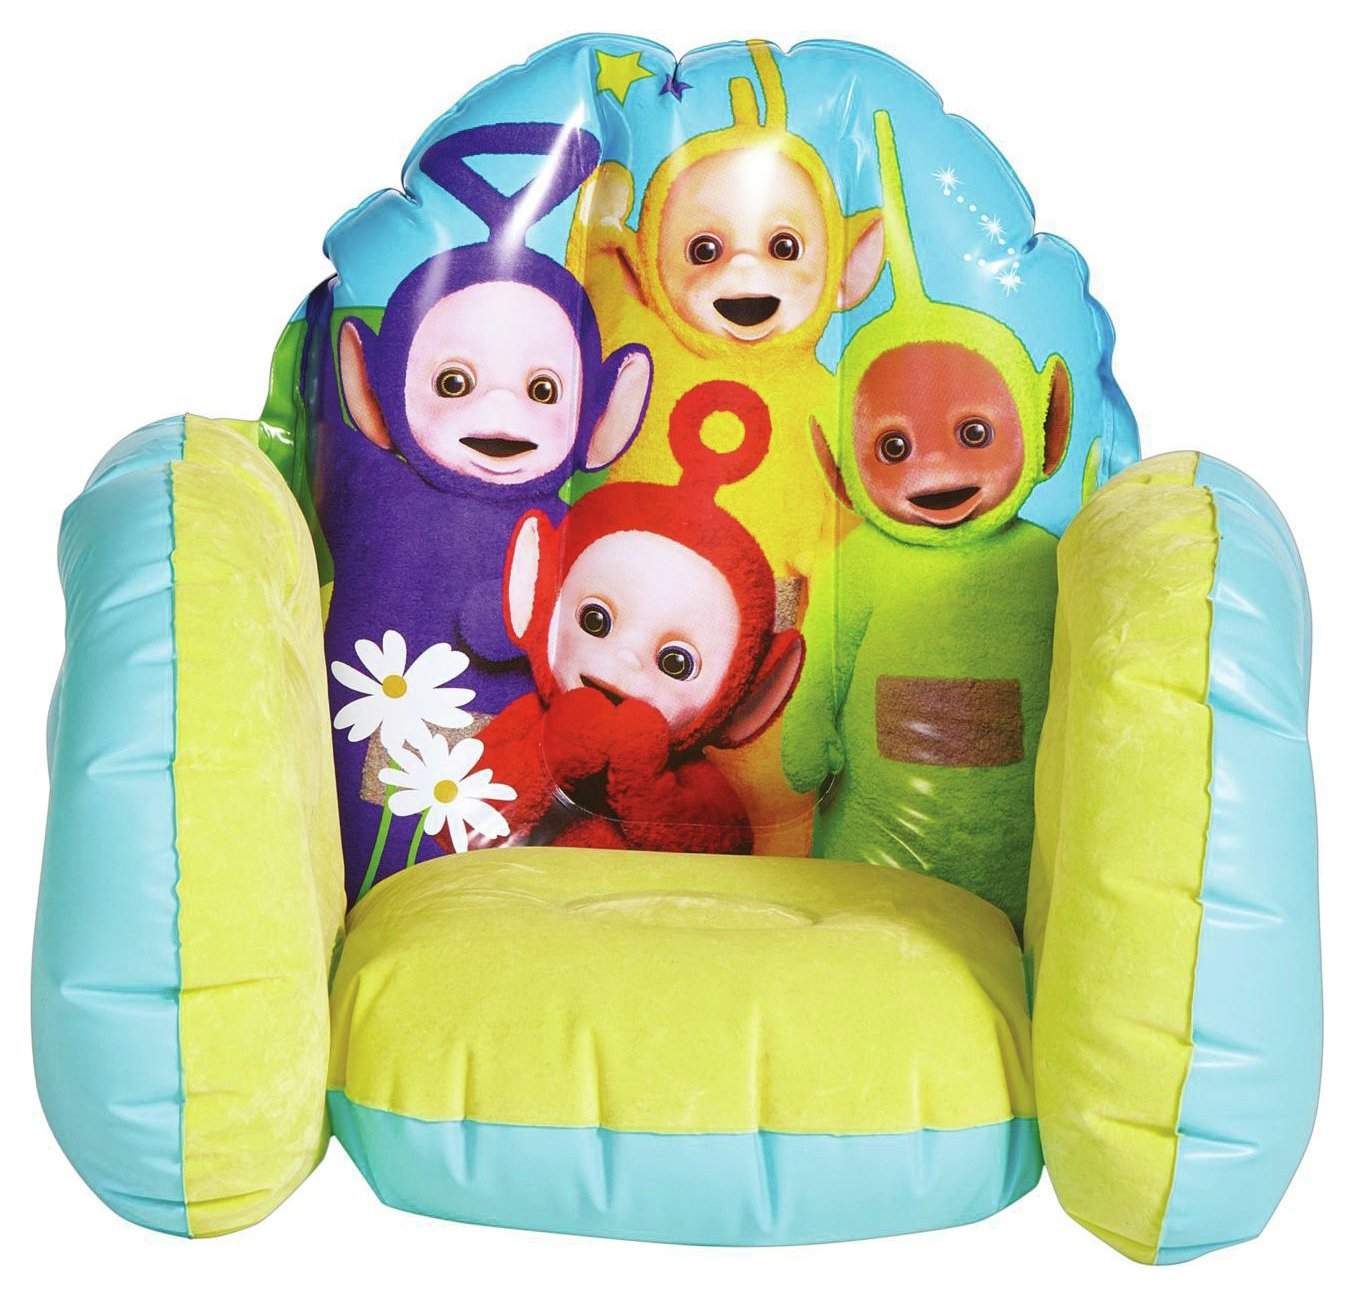 Image of Teletubbies Flocked Chair